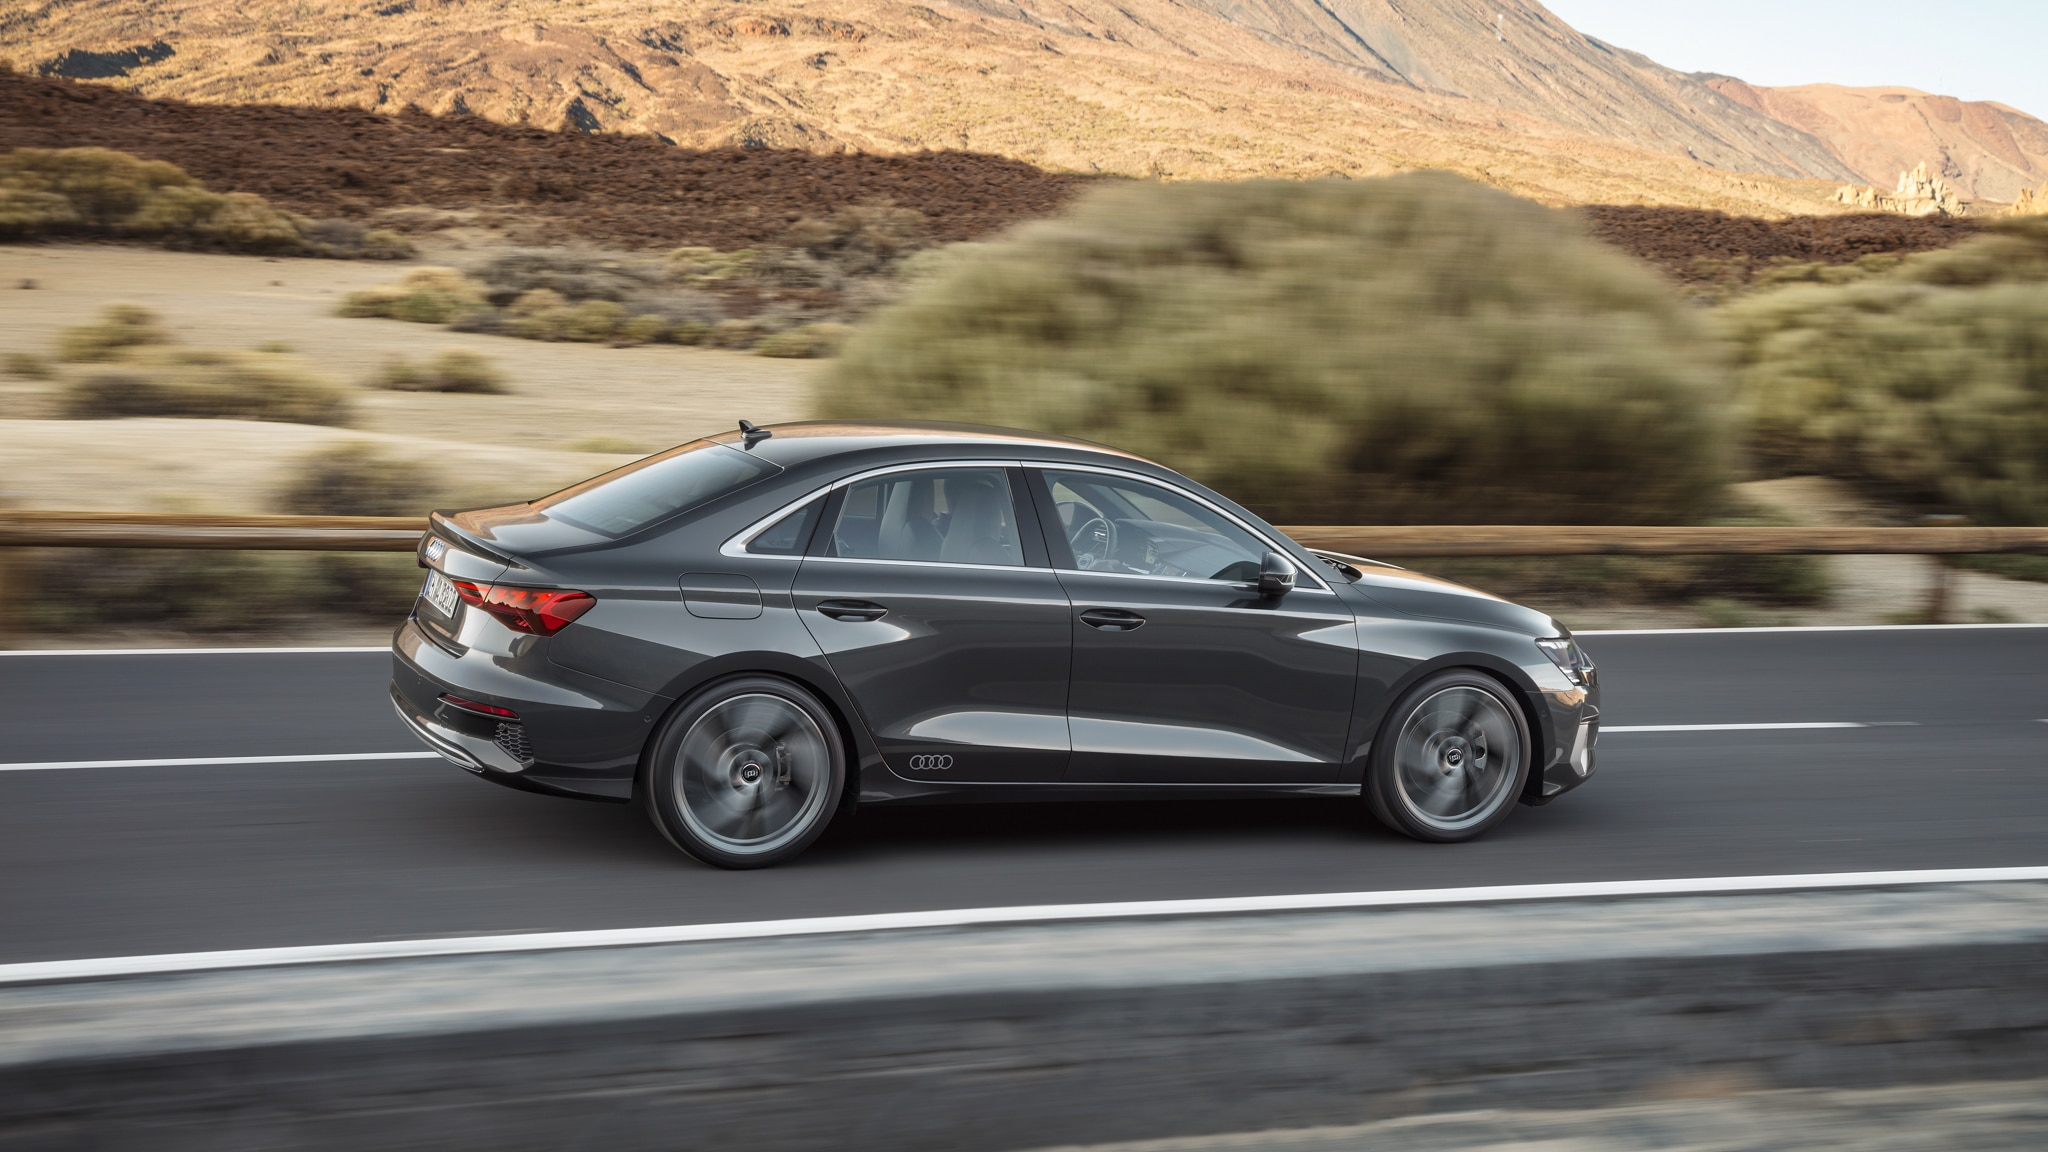 Audi Introduces Great Looking 2021 A3 Sedan Complete With New Coke Bottle Shape